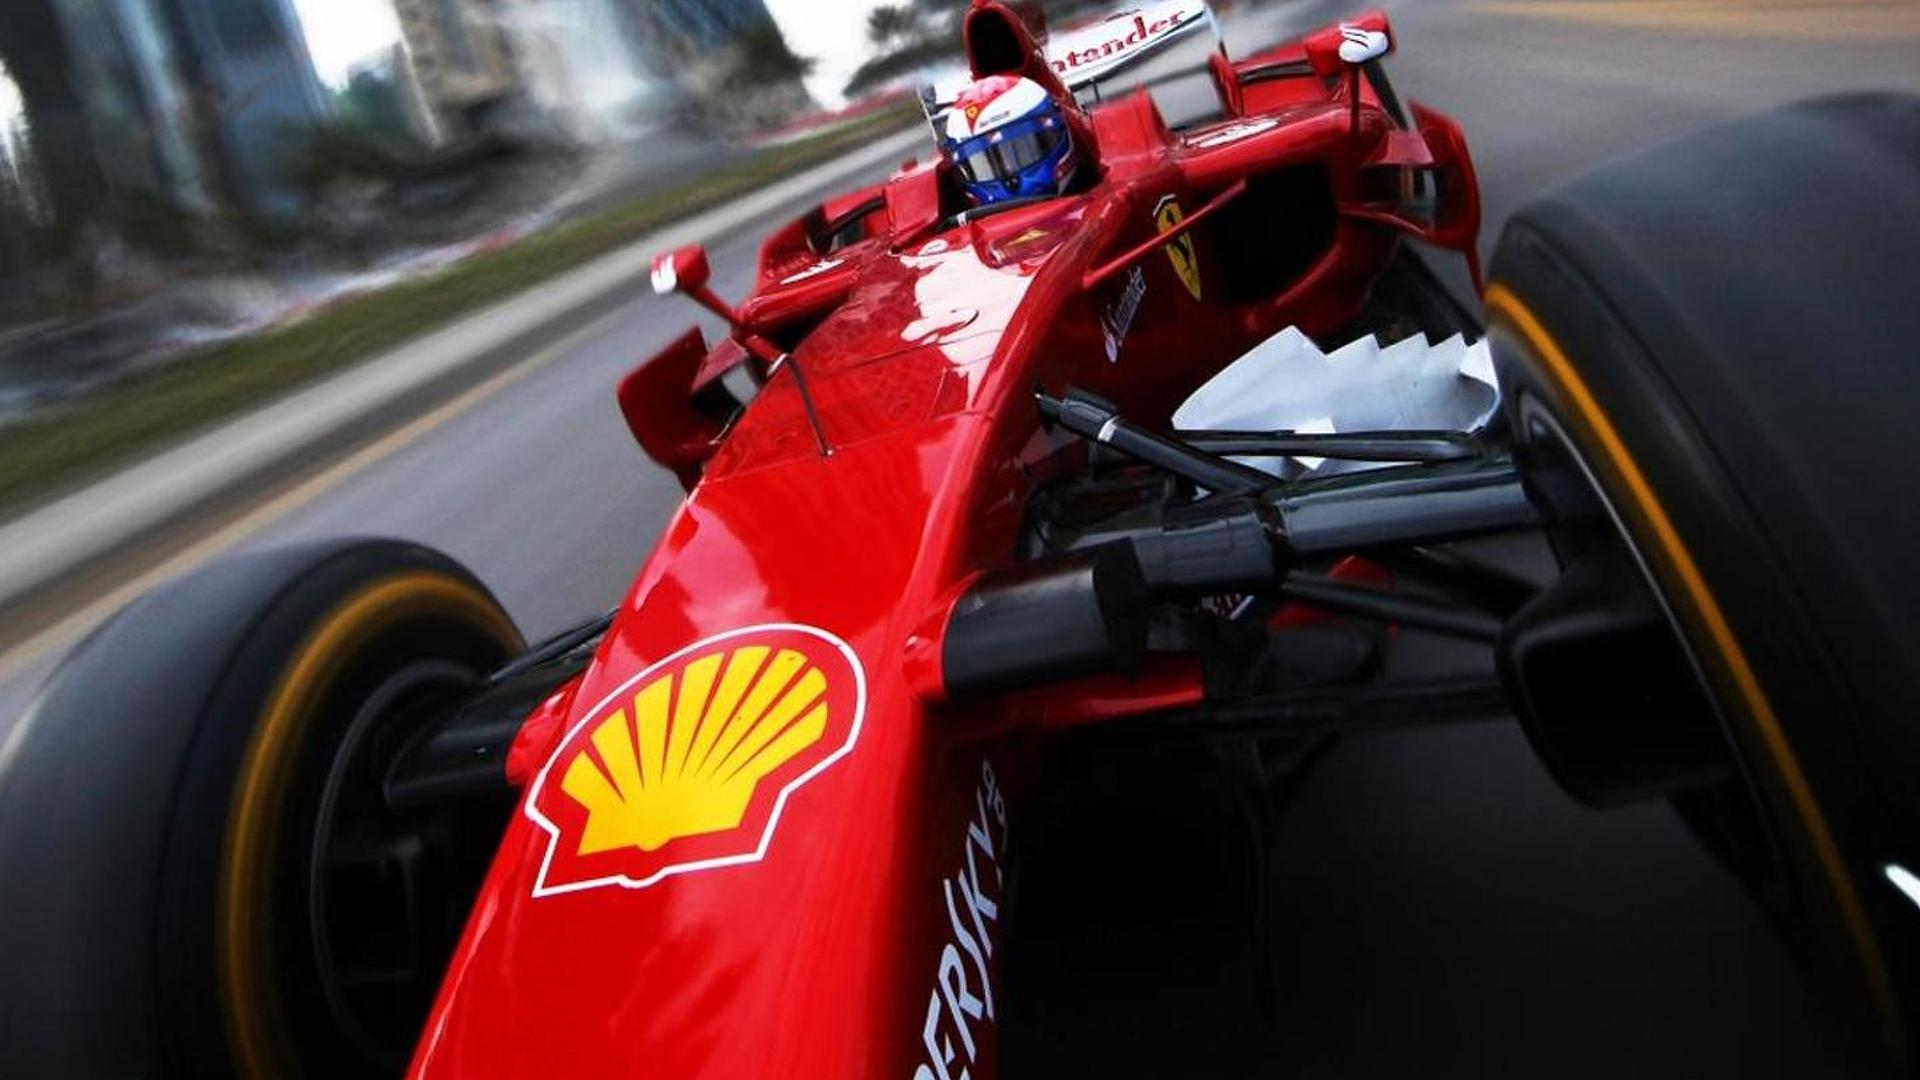 Details of 2012 Ferrari F1 car emerge in Italian press